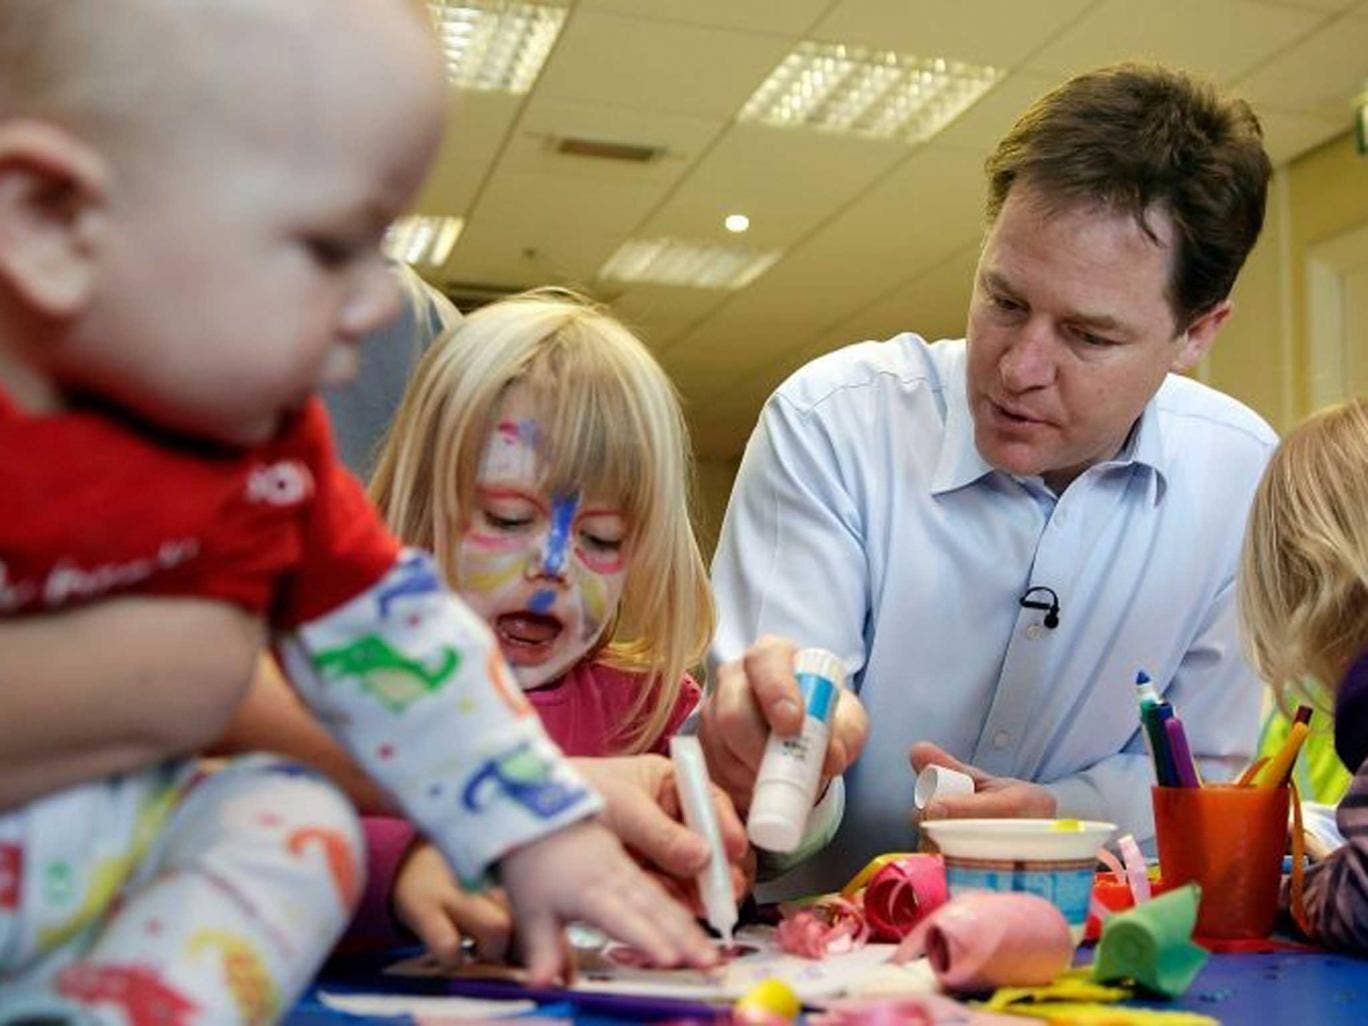 Nick Clegg: 'This is about choice and fairness'